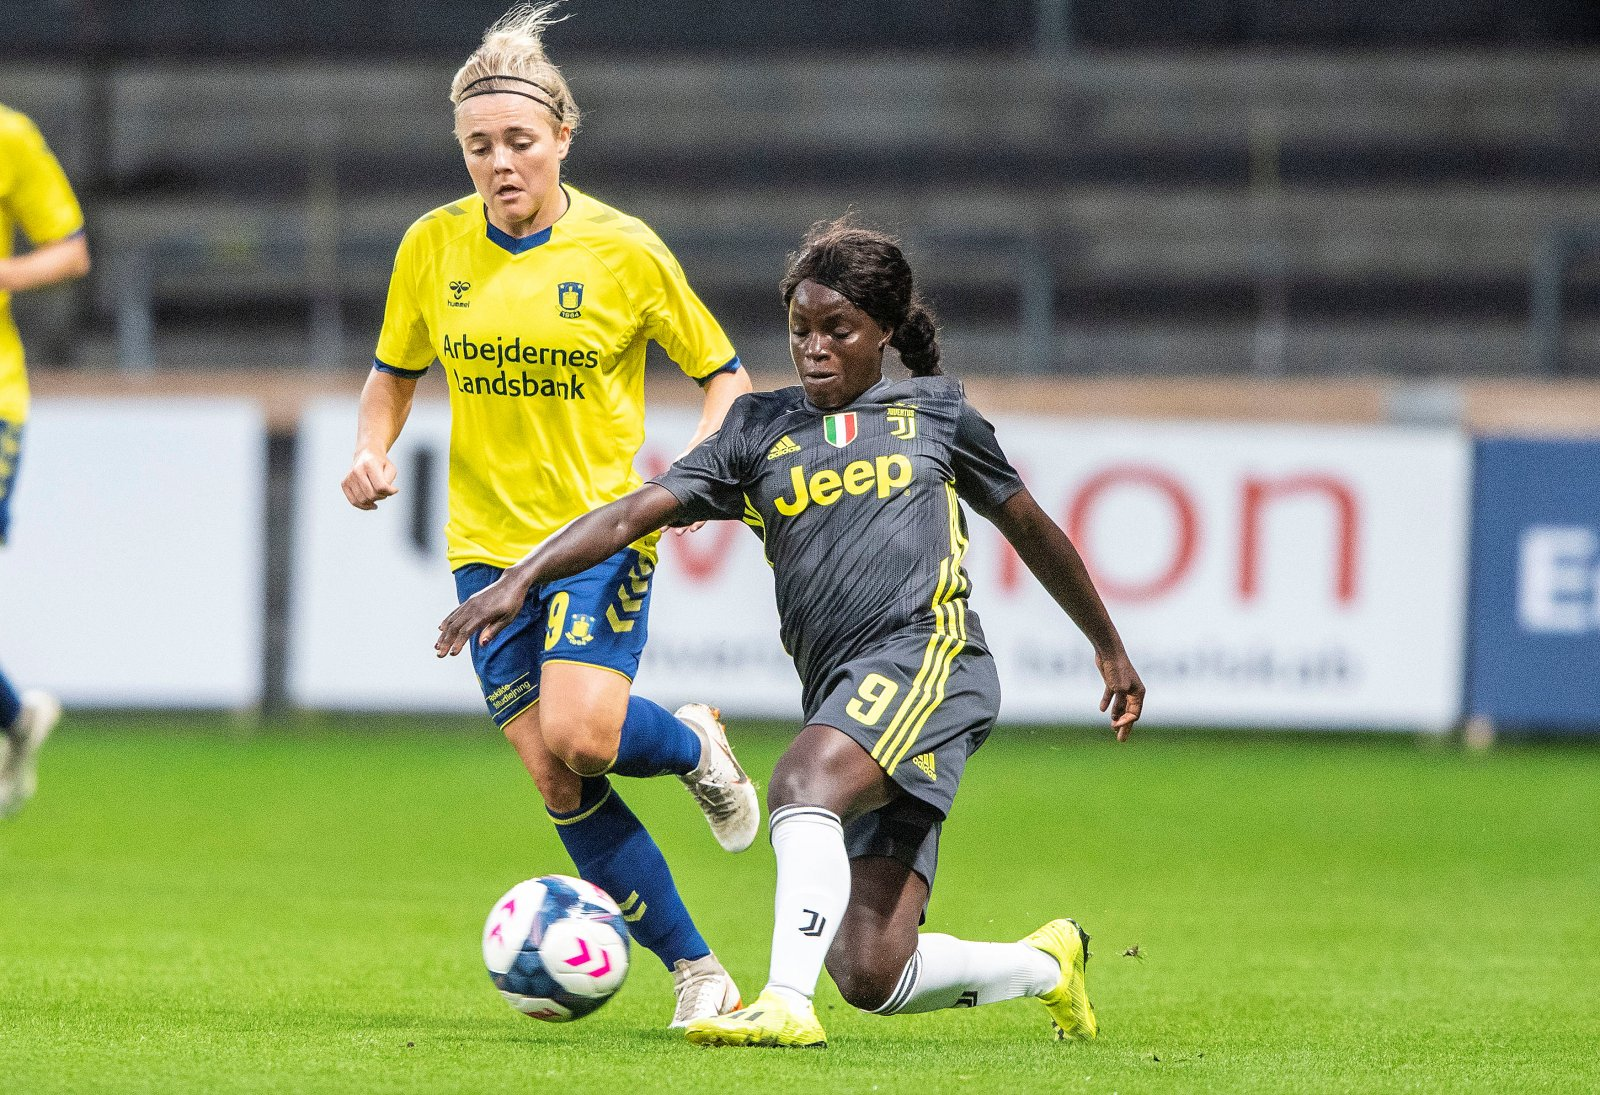 Eni Aluko playing for Juventus